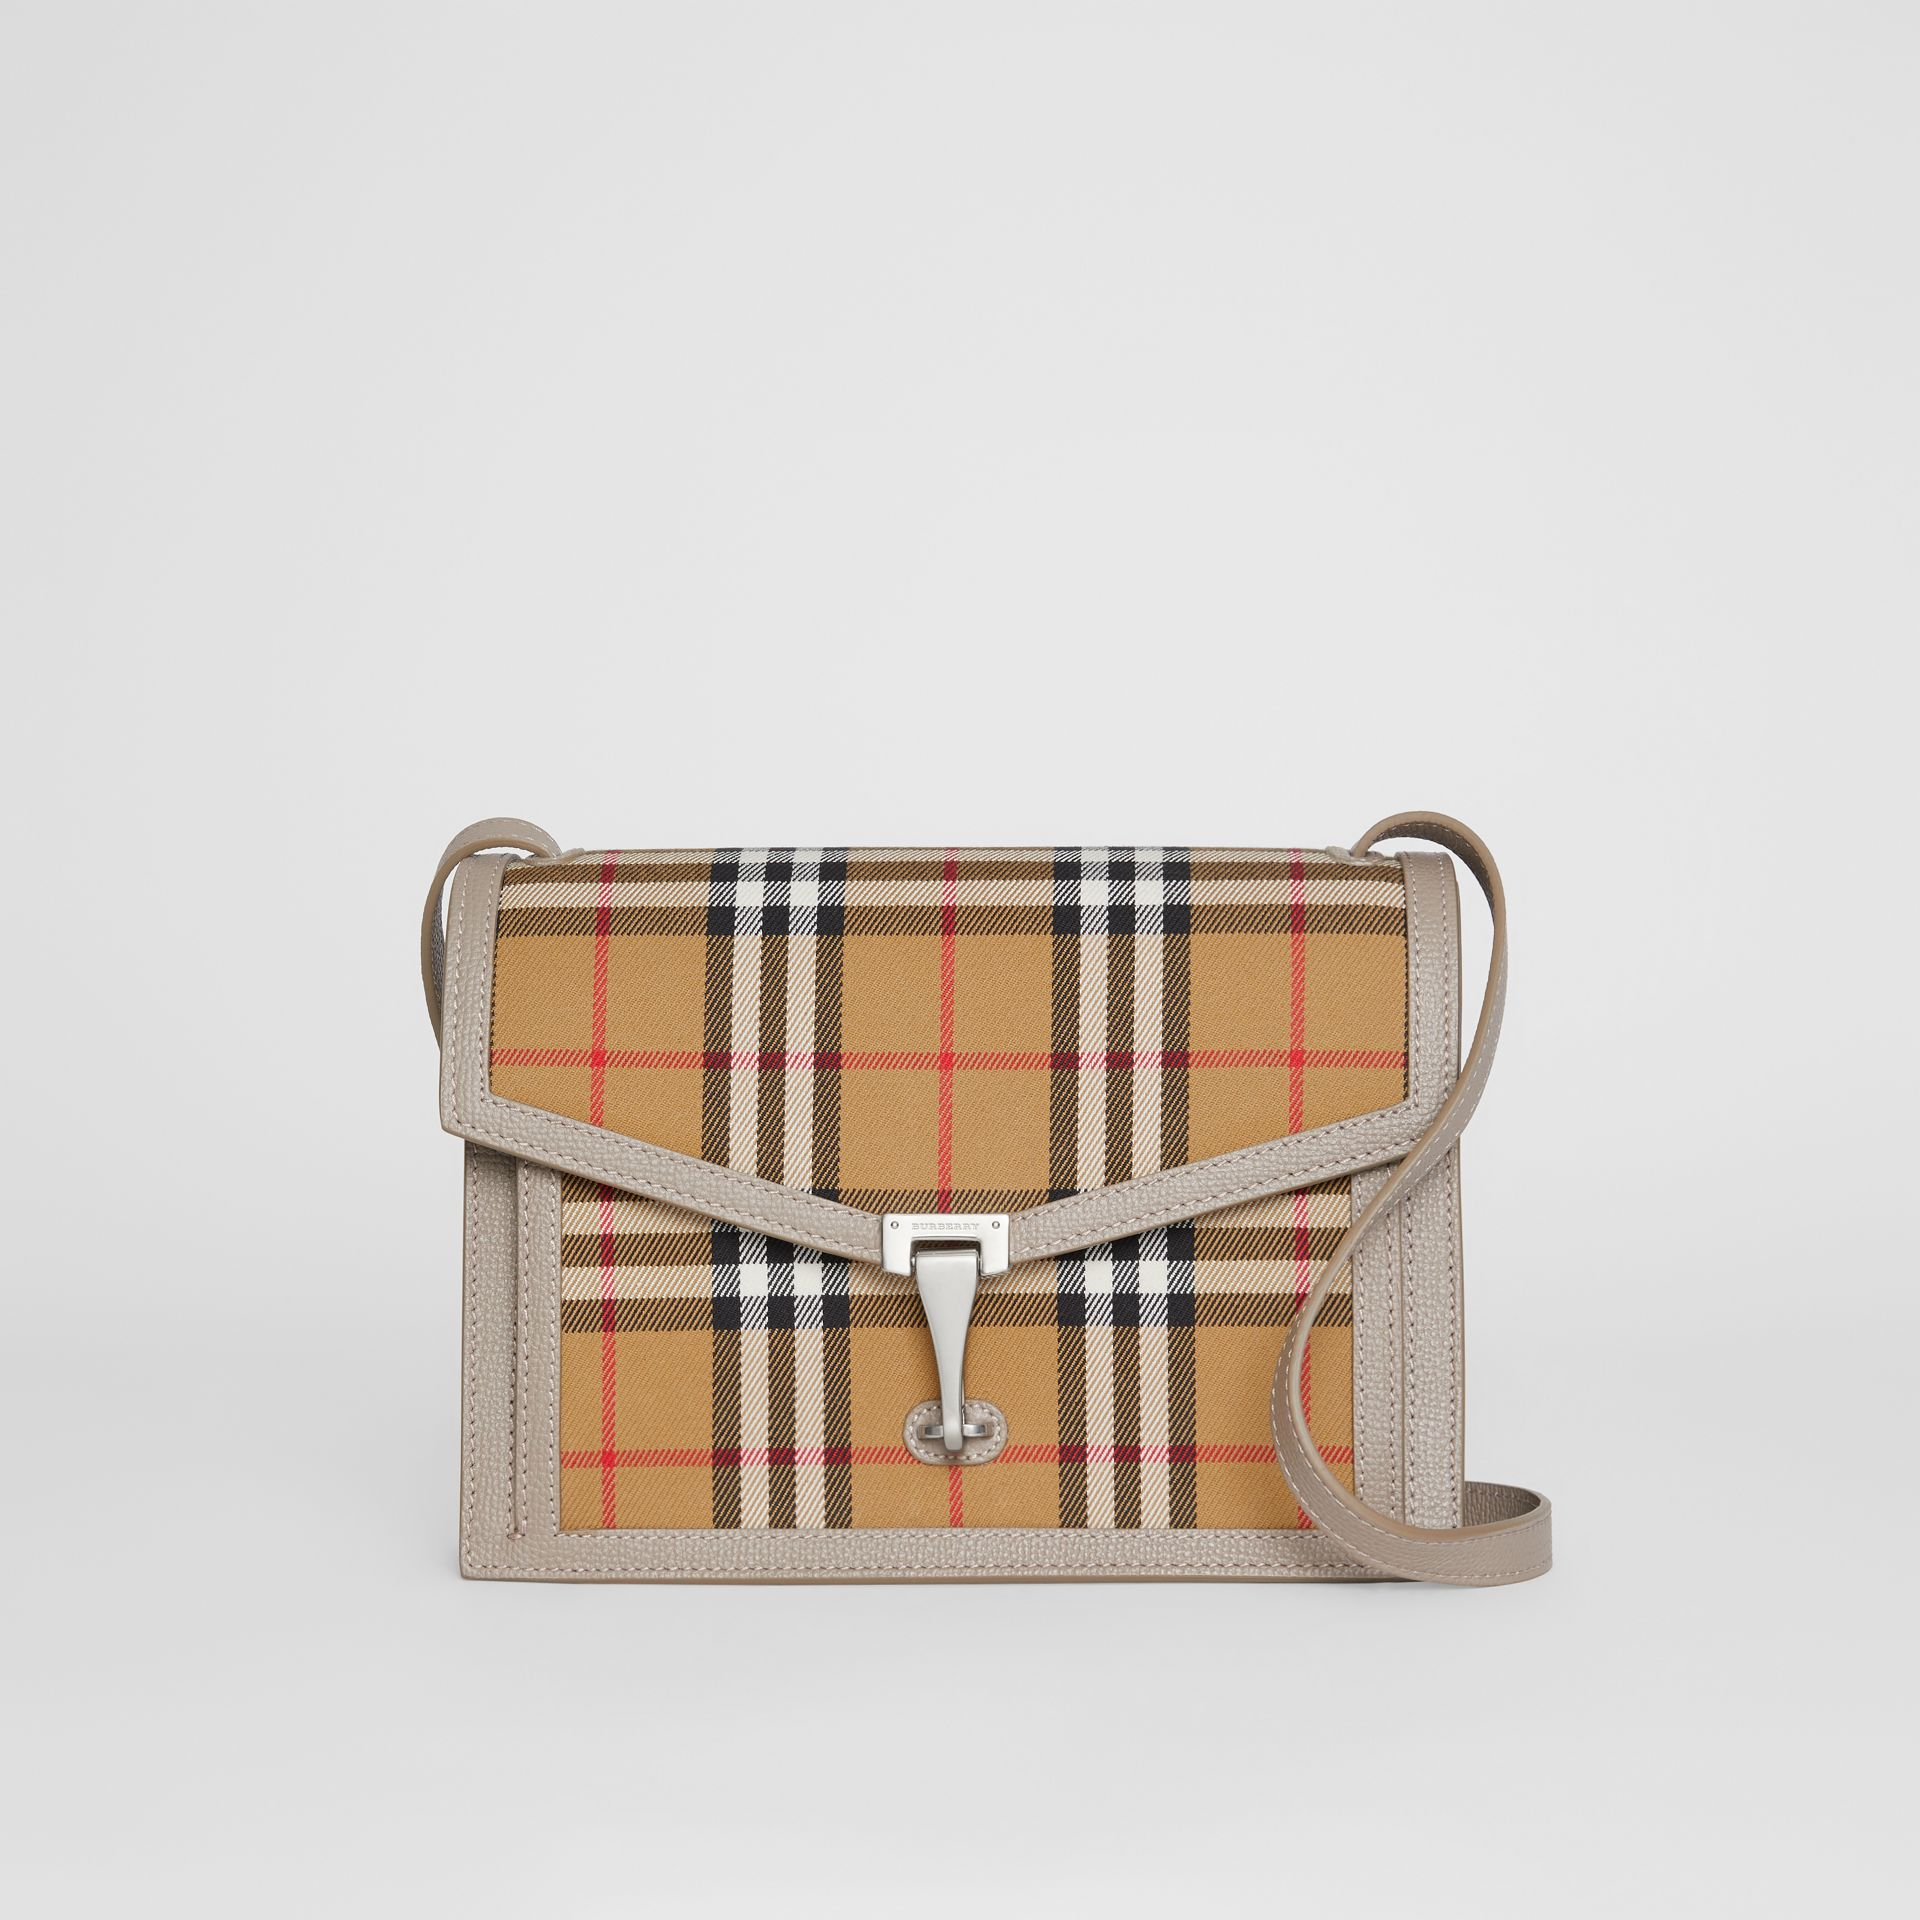 Small Vintage Check and Leather Crossbody Bag in Taupe Brown - Women | Burberry Australia - gallery image 0